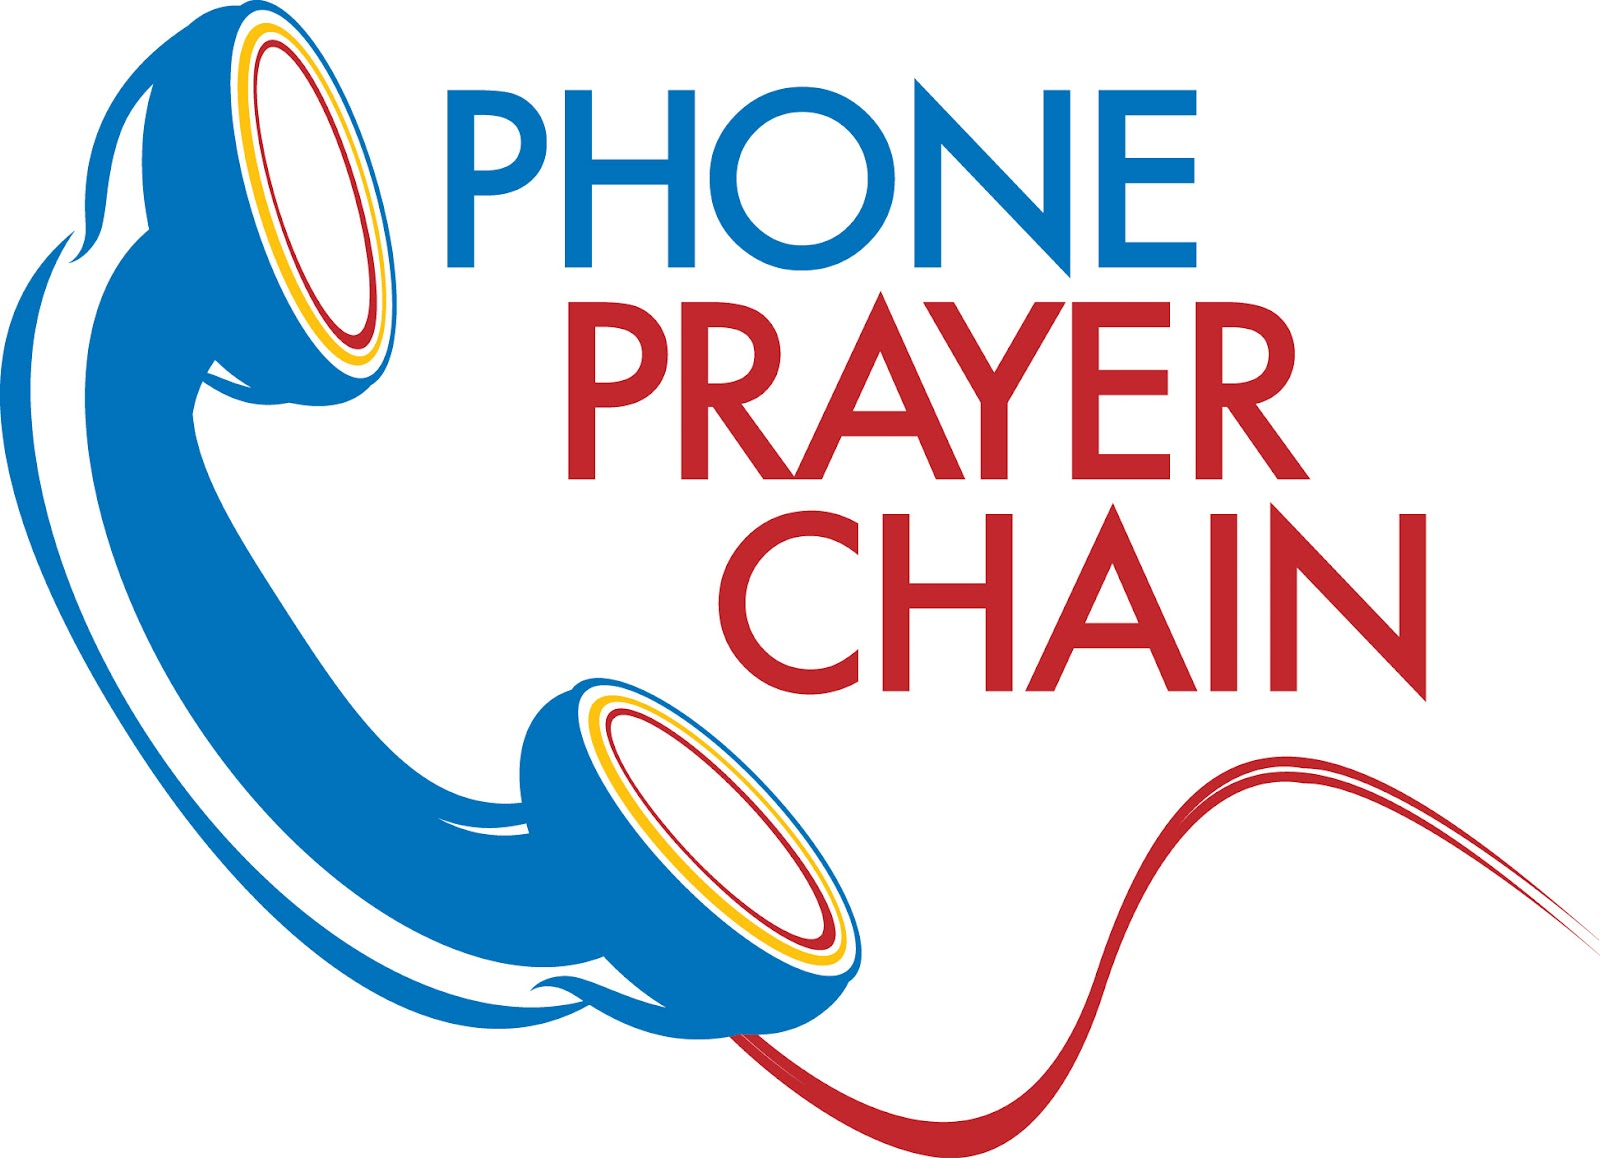 Phone Prayer Chain.